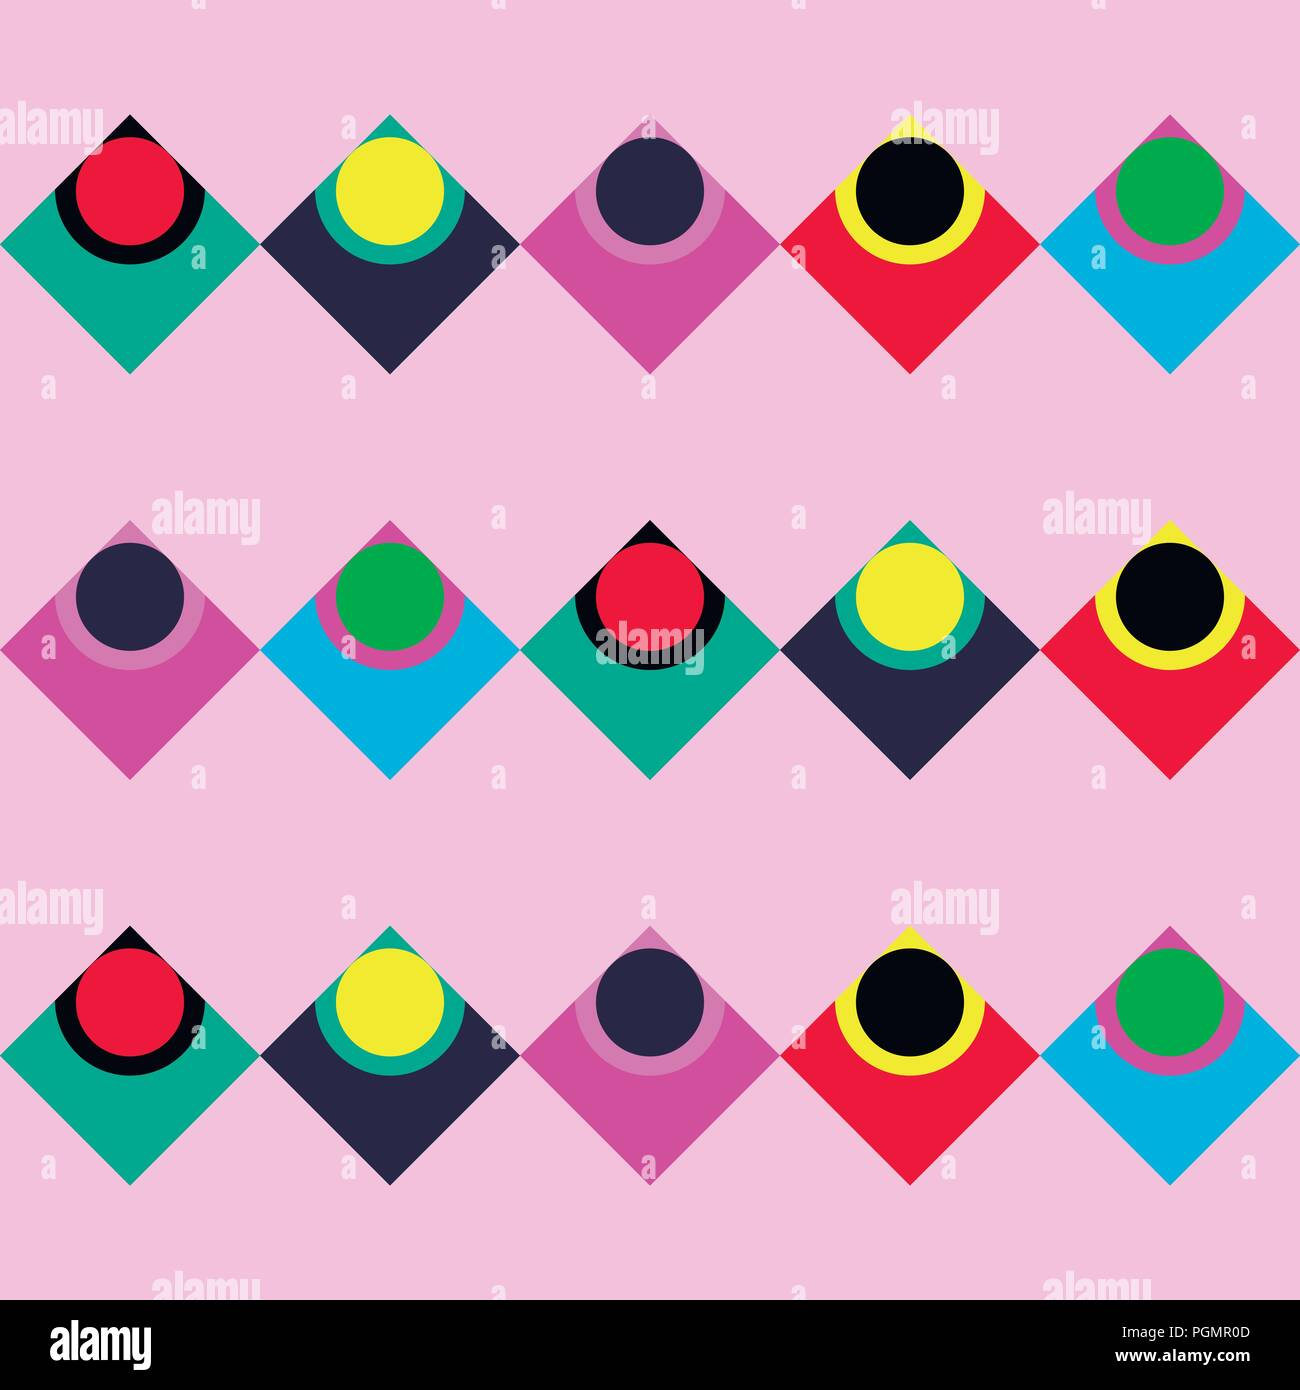 Simple retro vector background with colorful elements. Stock Vector